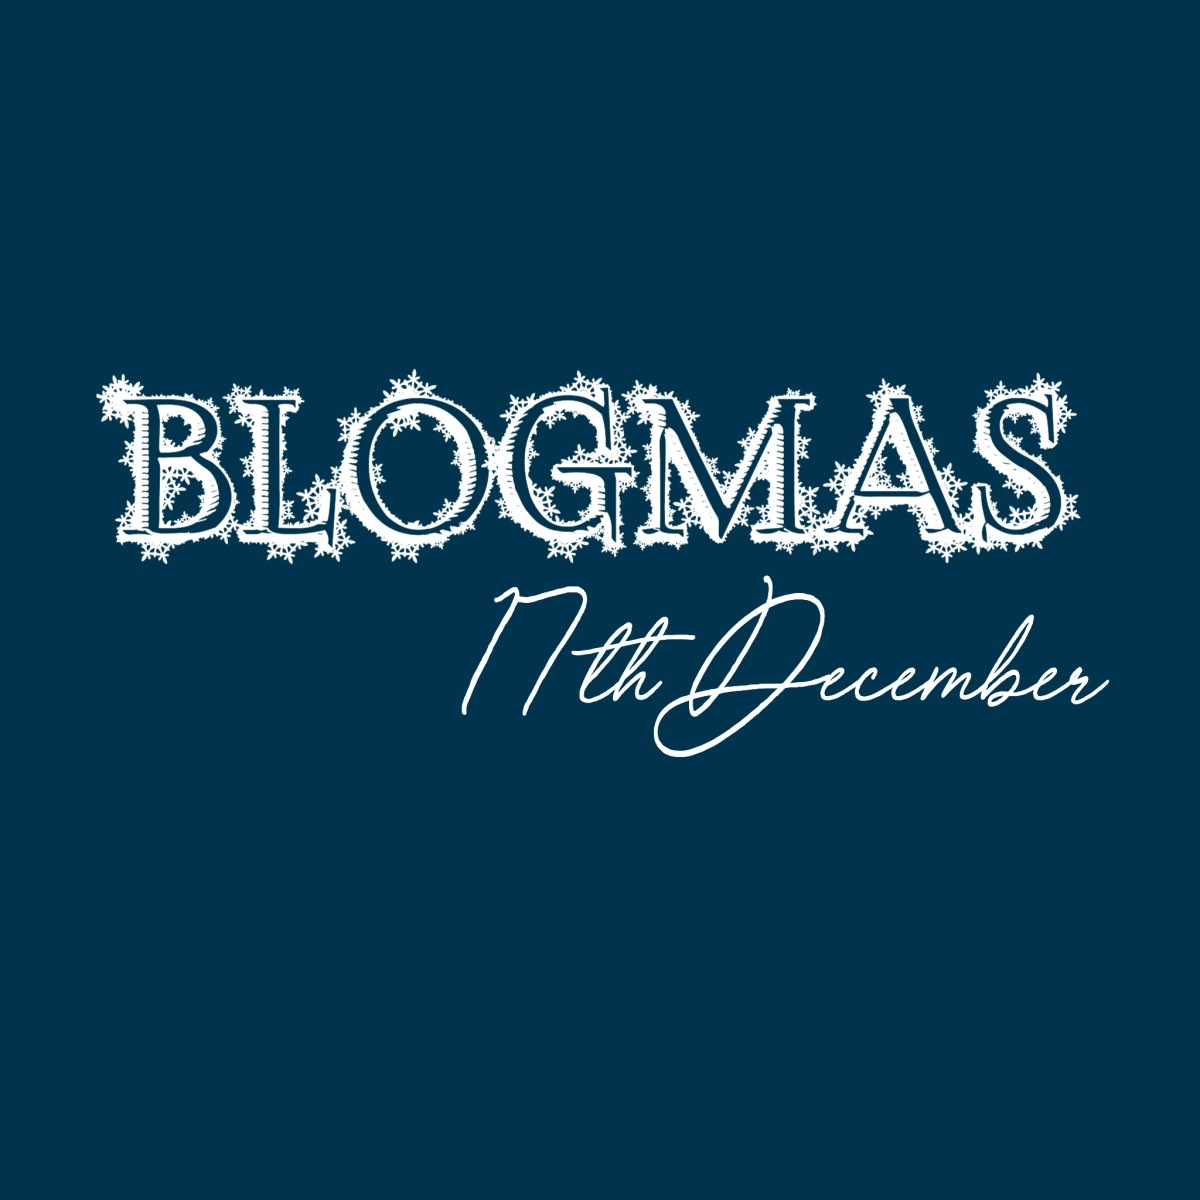 Blogmas - A Guide To Christmas Etiquette